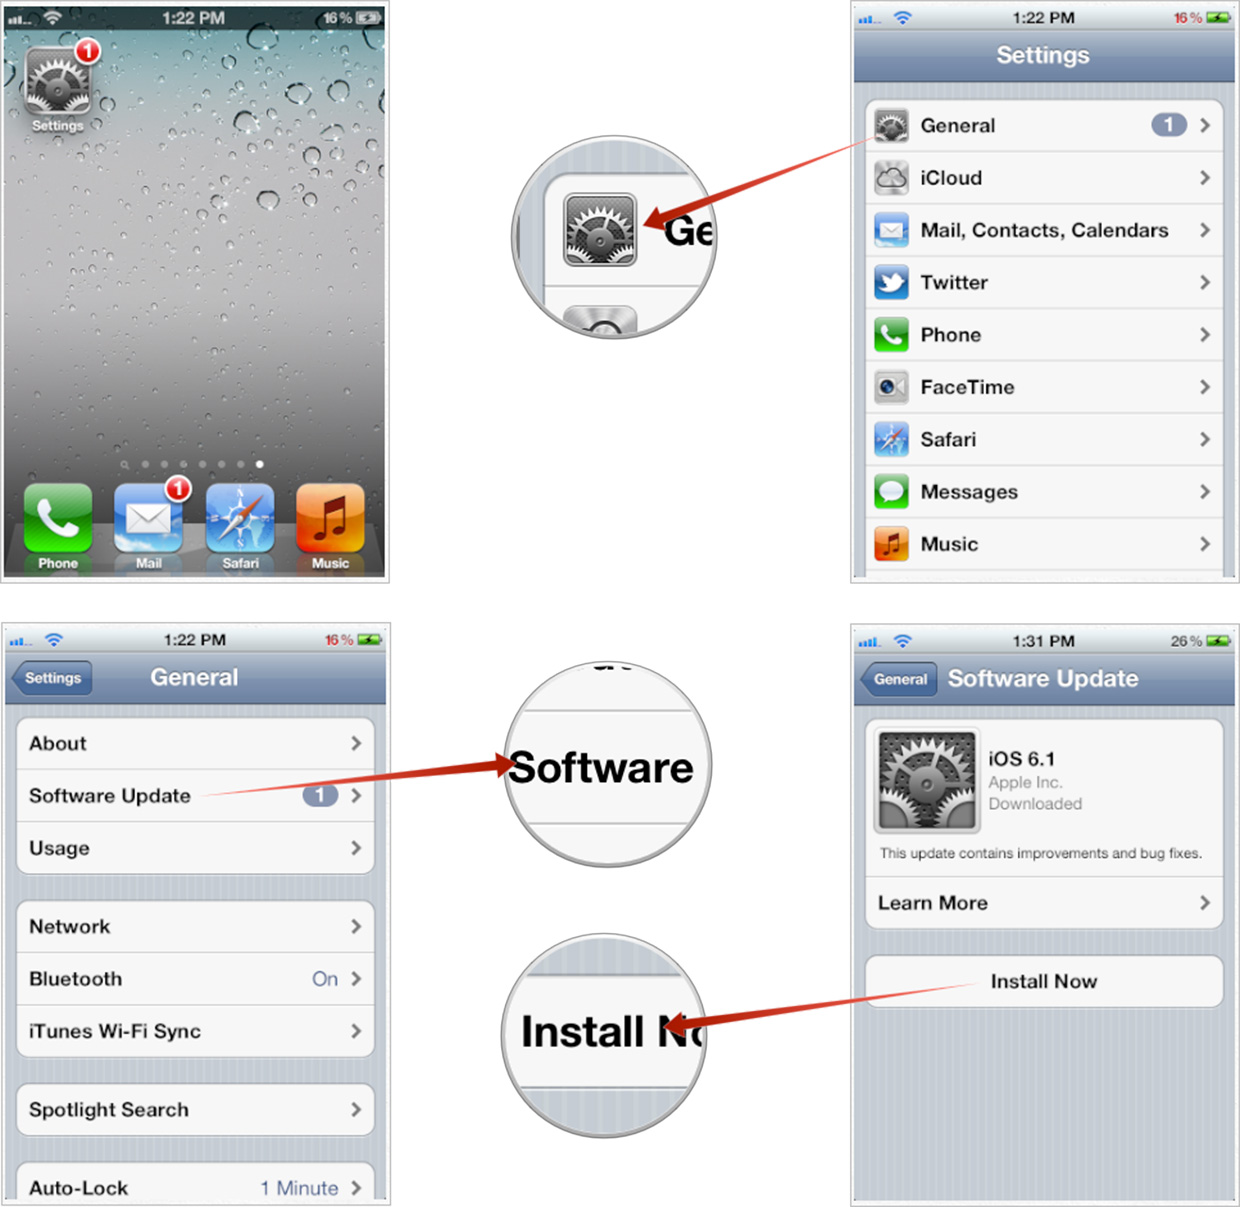 iphone versiyon güncelleme, iphone ipad güncelleme, iphone restore, apple güncelleme